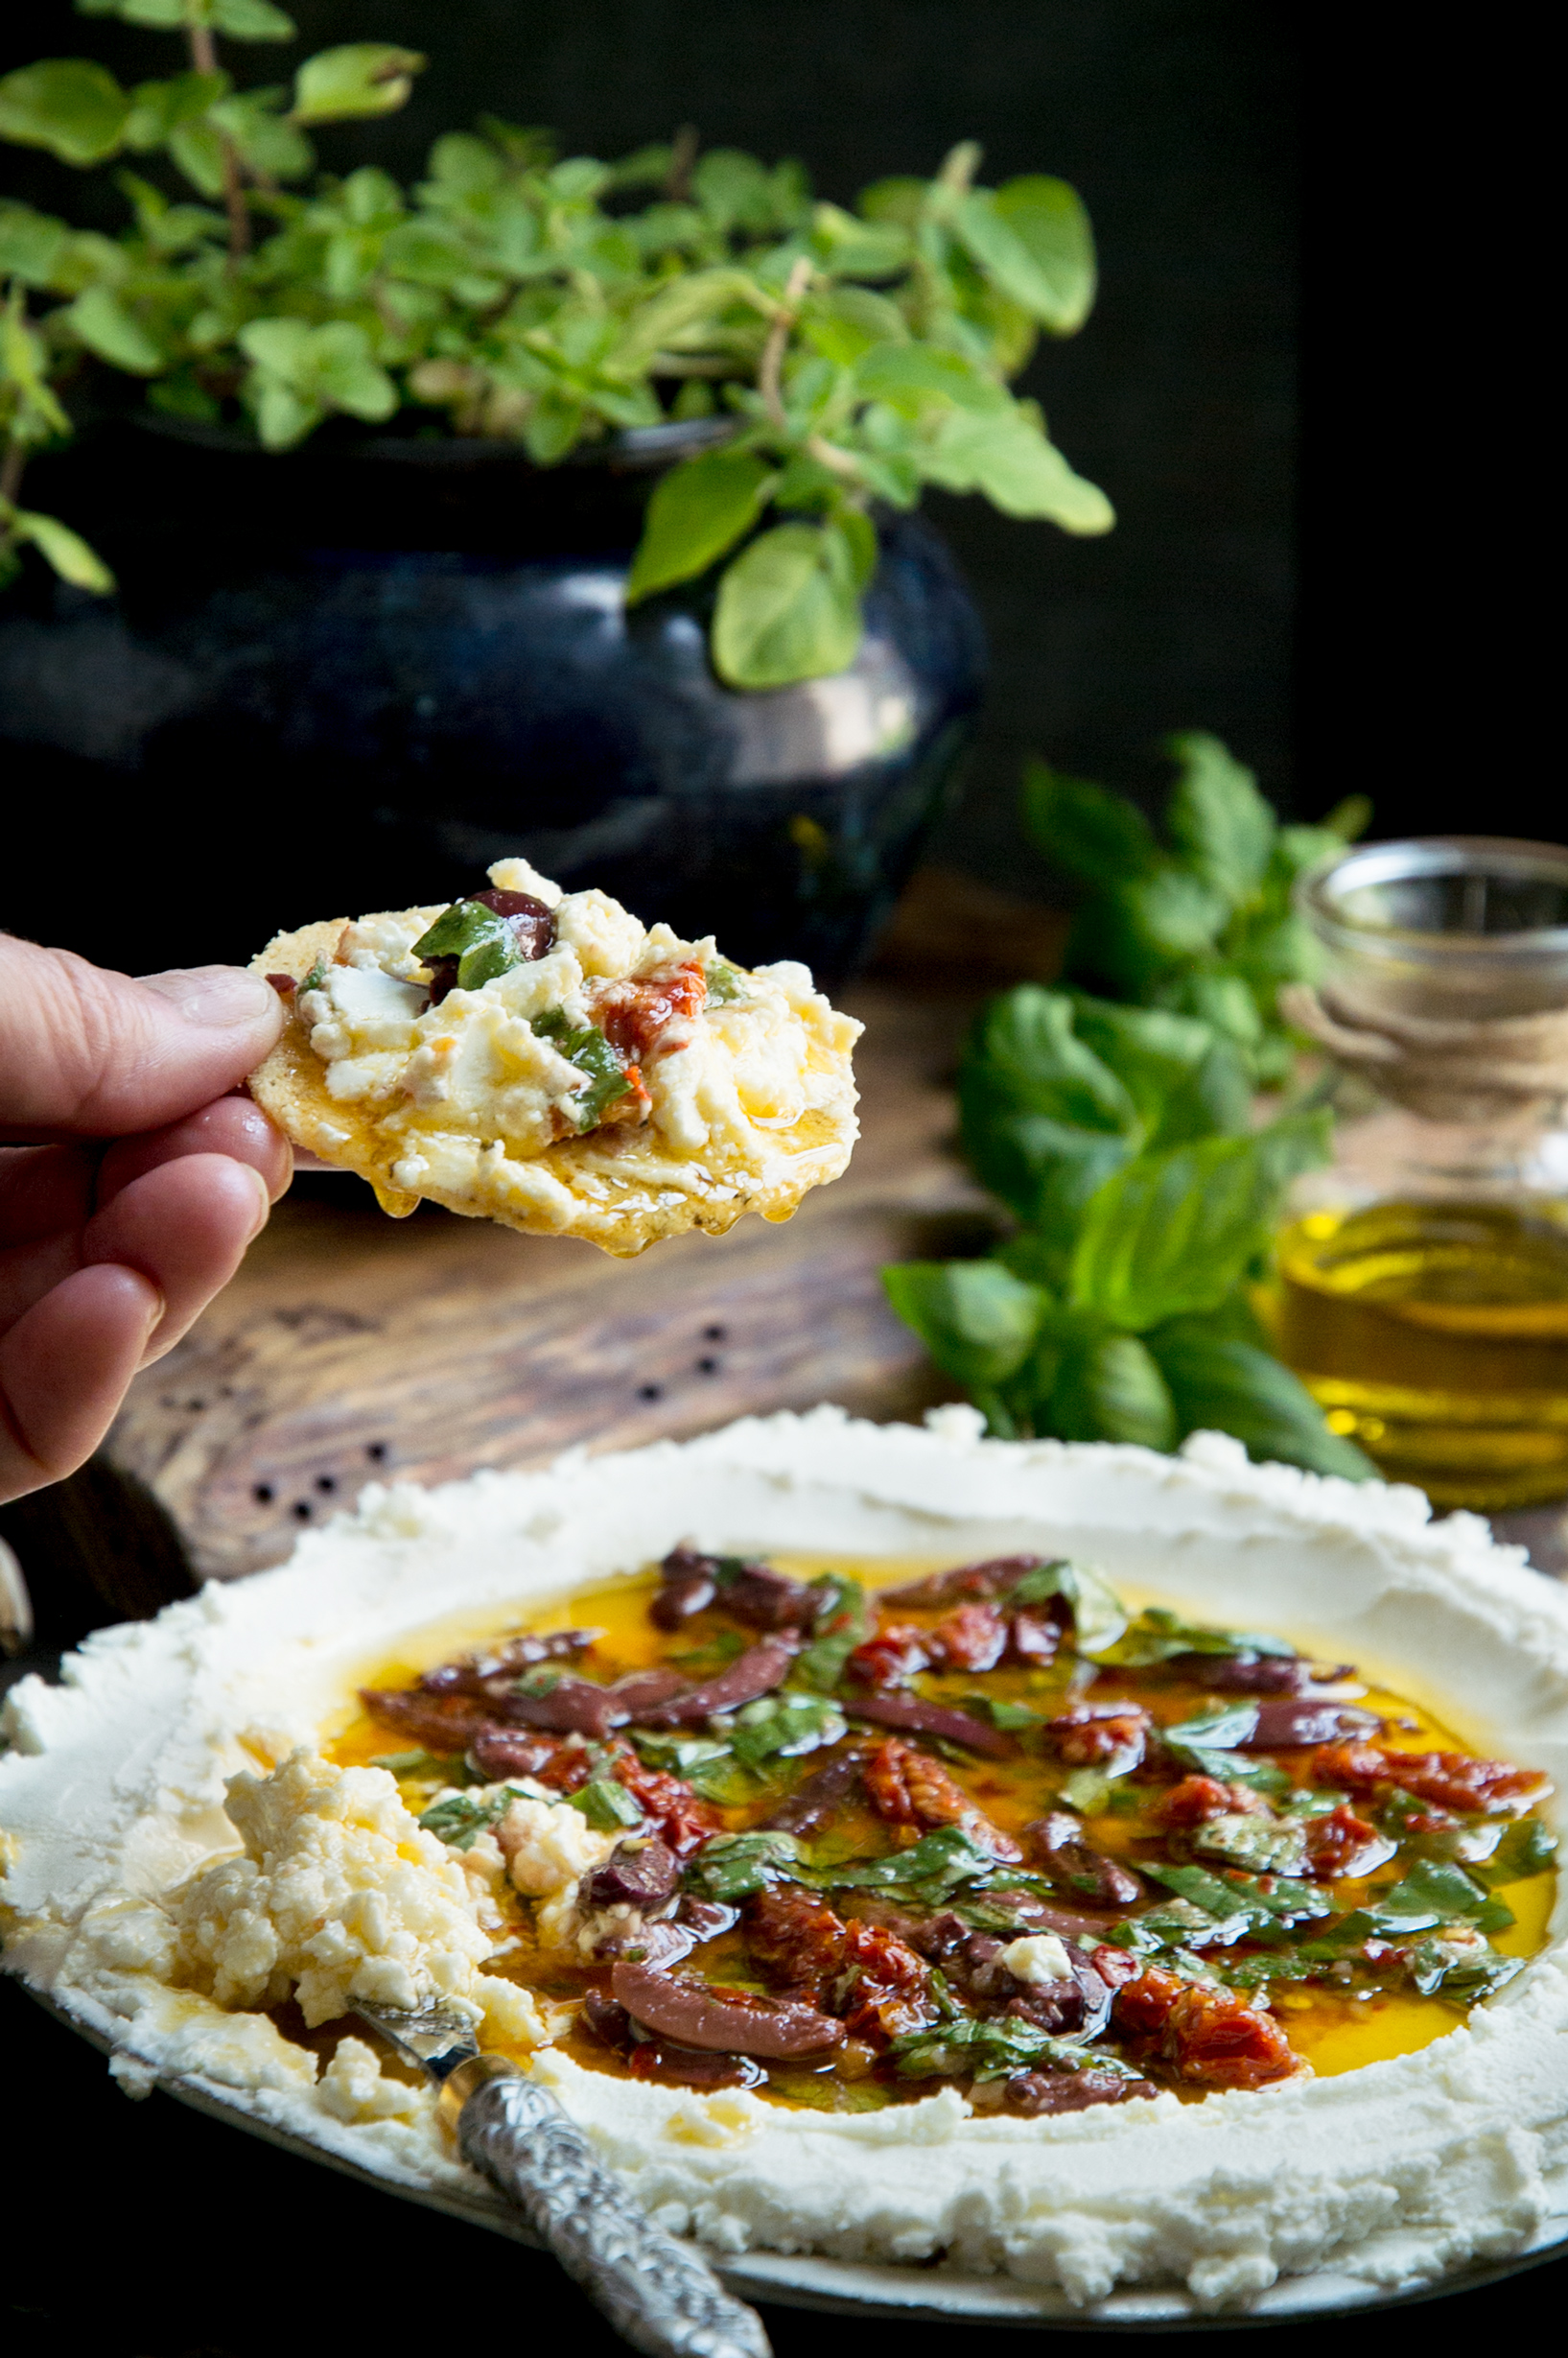 Herbed goat cheese spread on a cracker